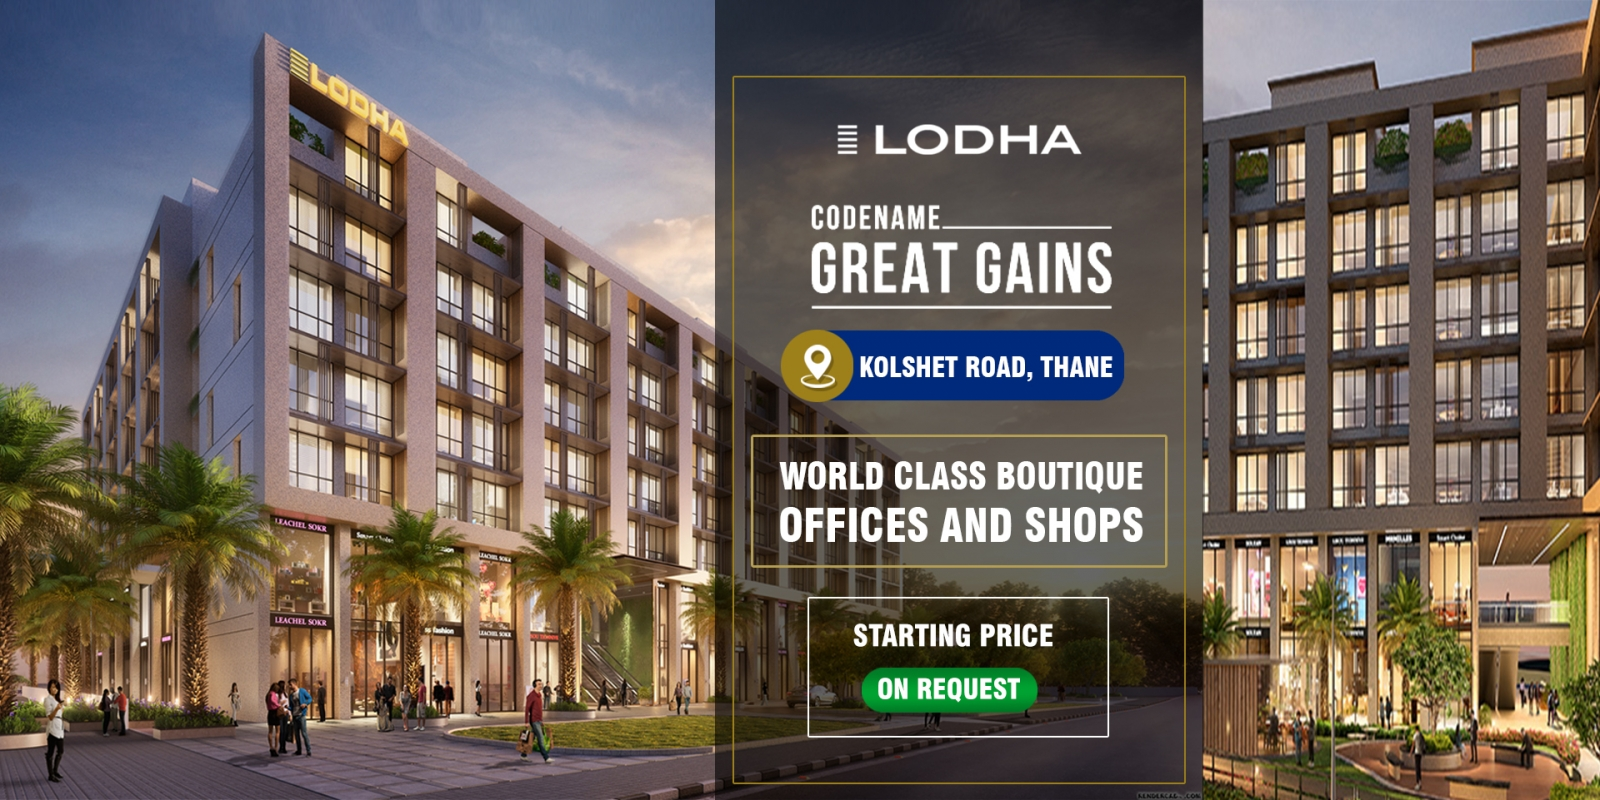 Lodha Great Gains thane